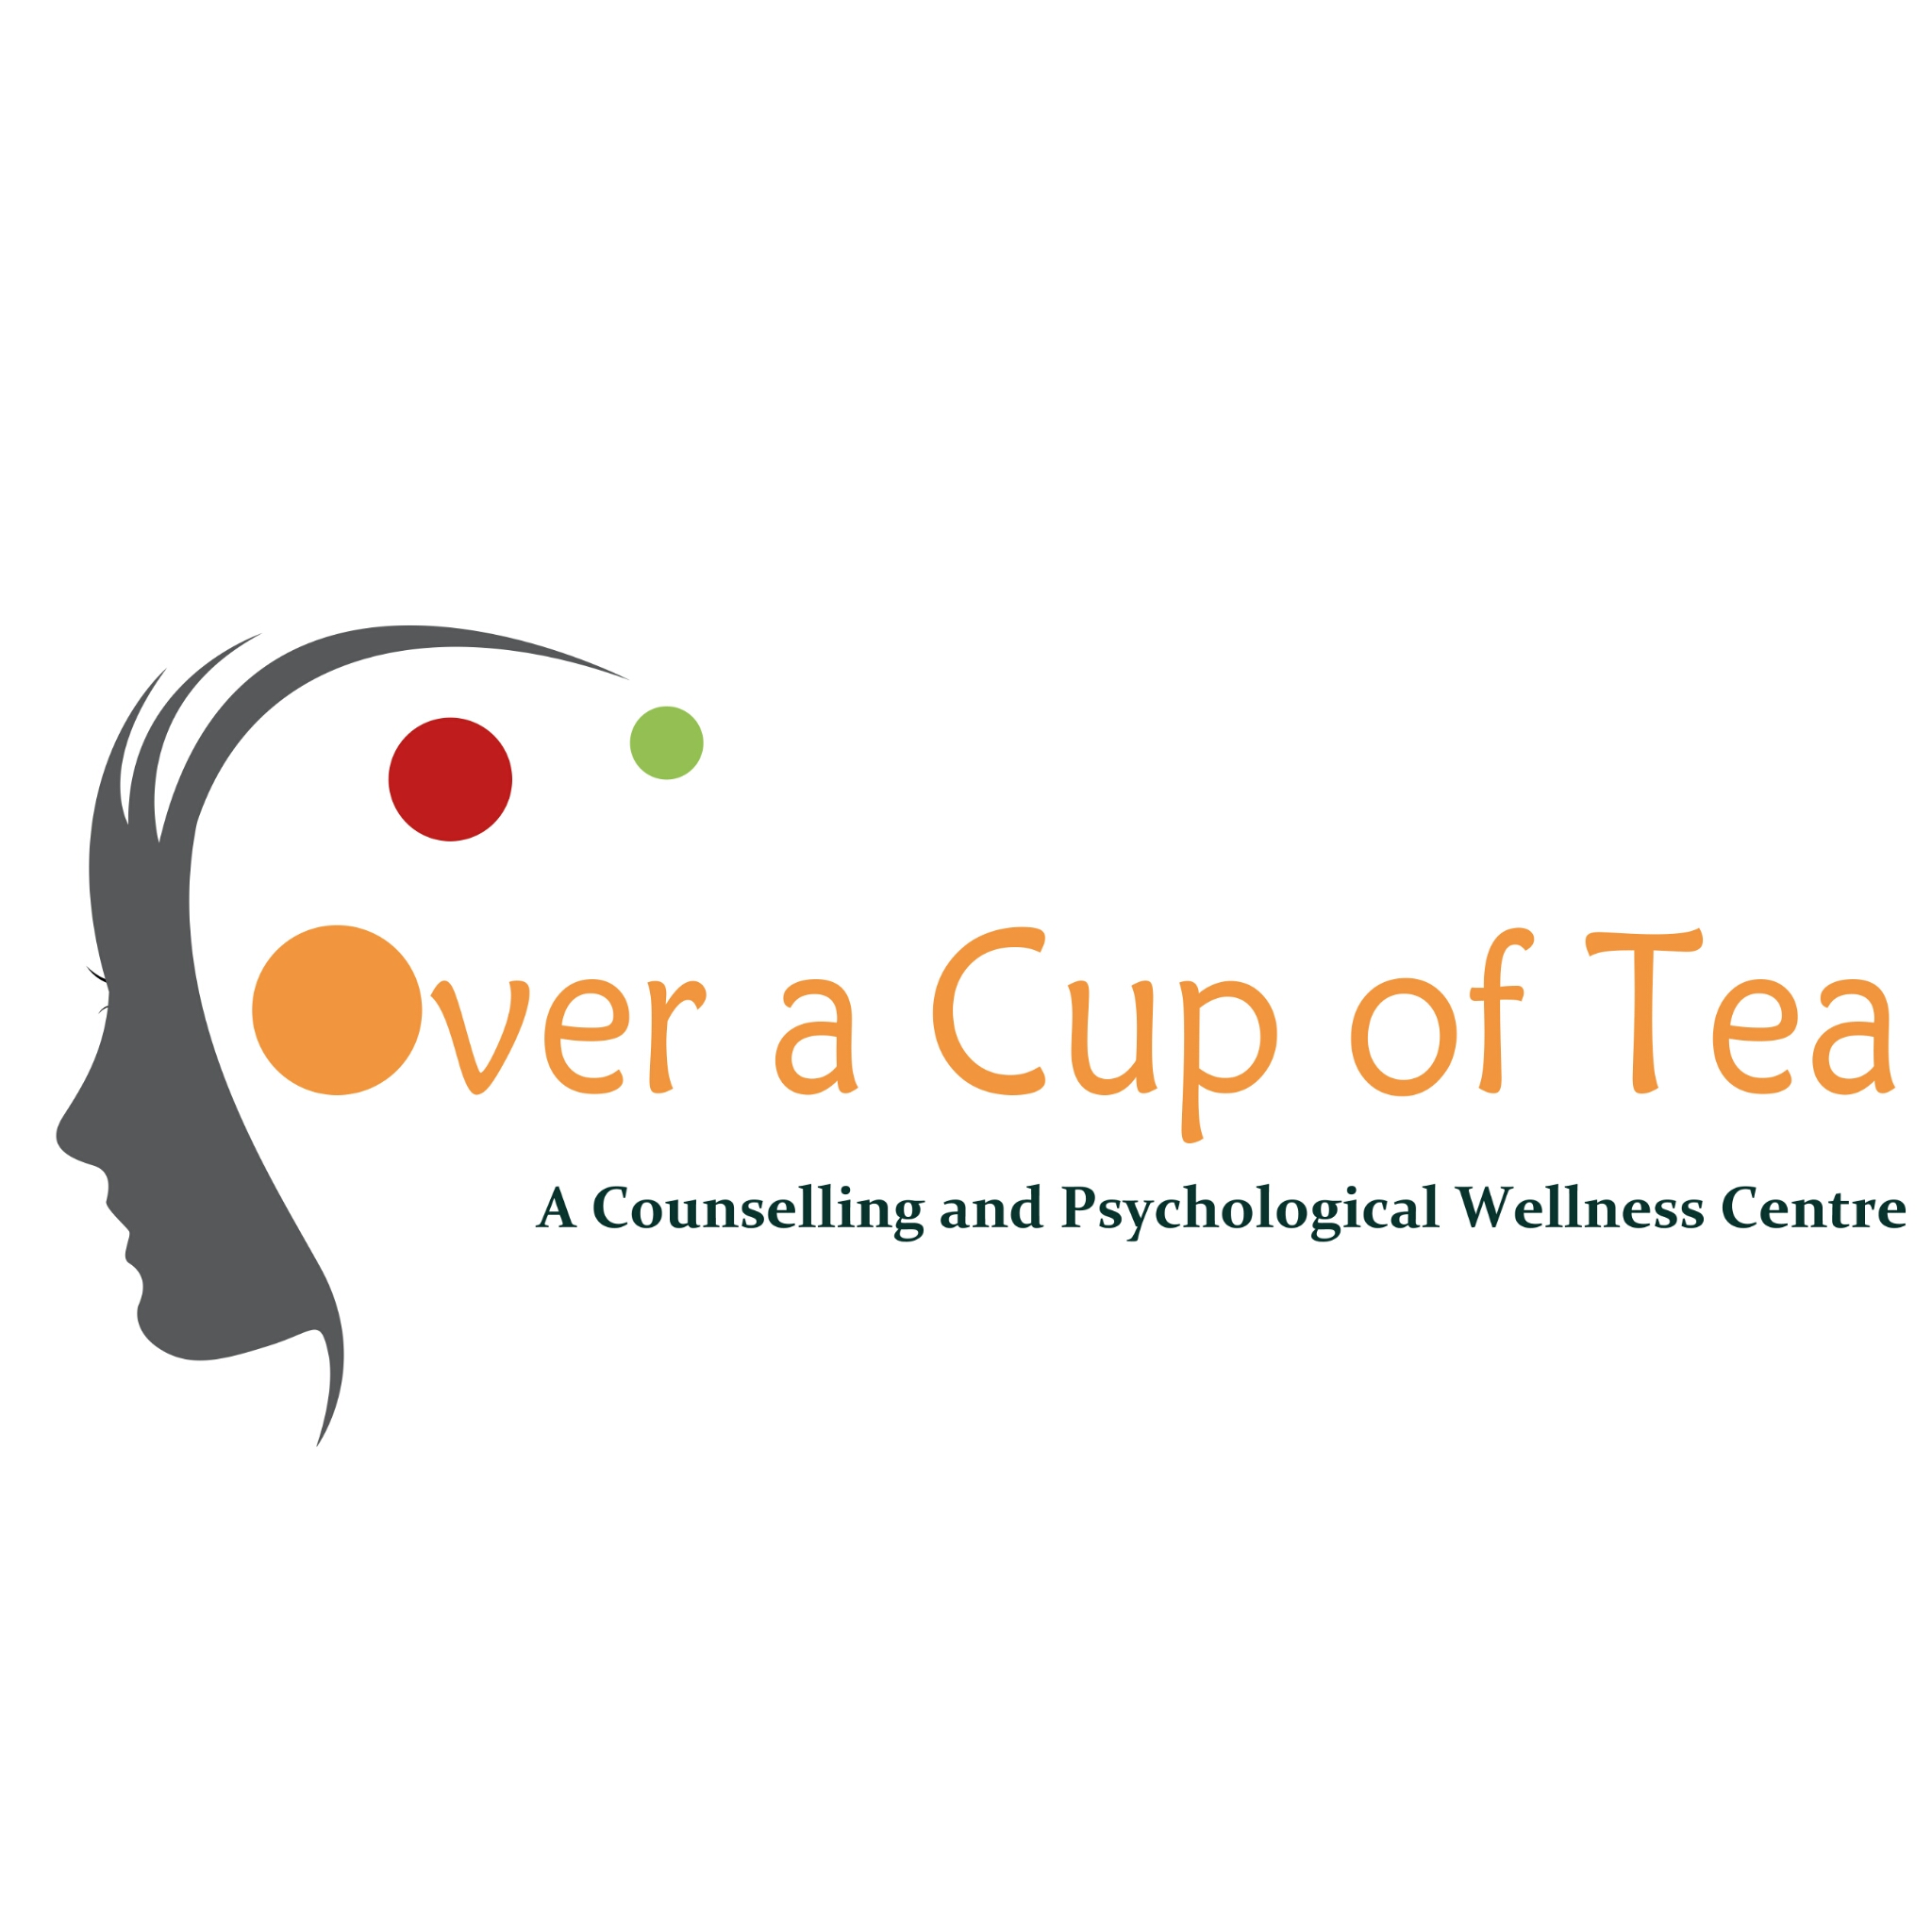 Over a Cup of Tea - A Counselling and Psychological Wellness Centre